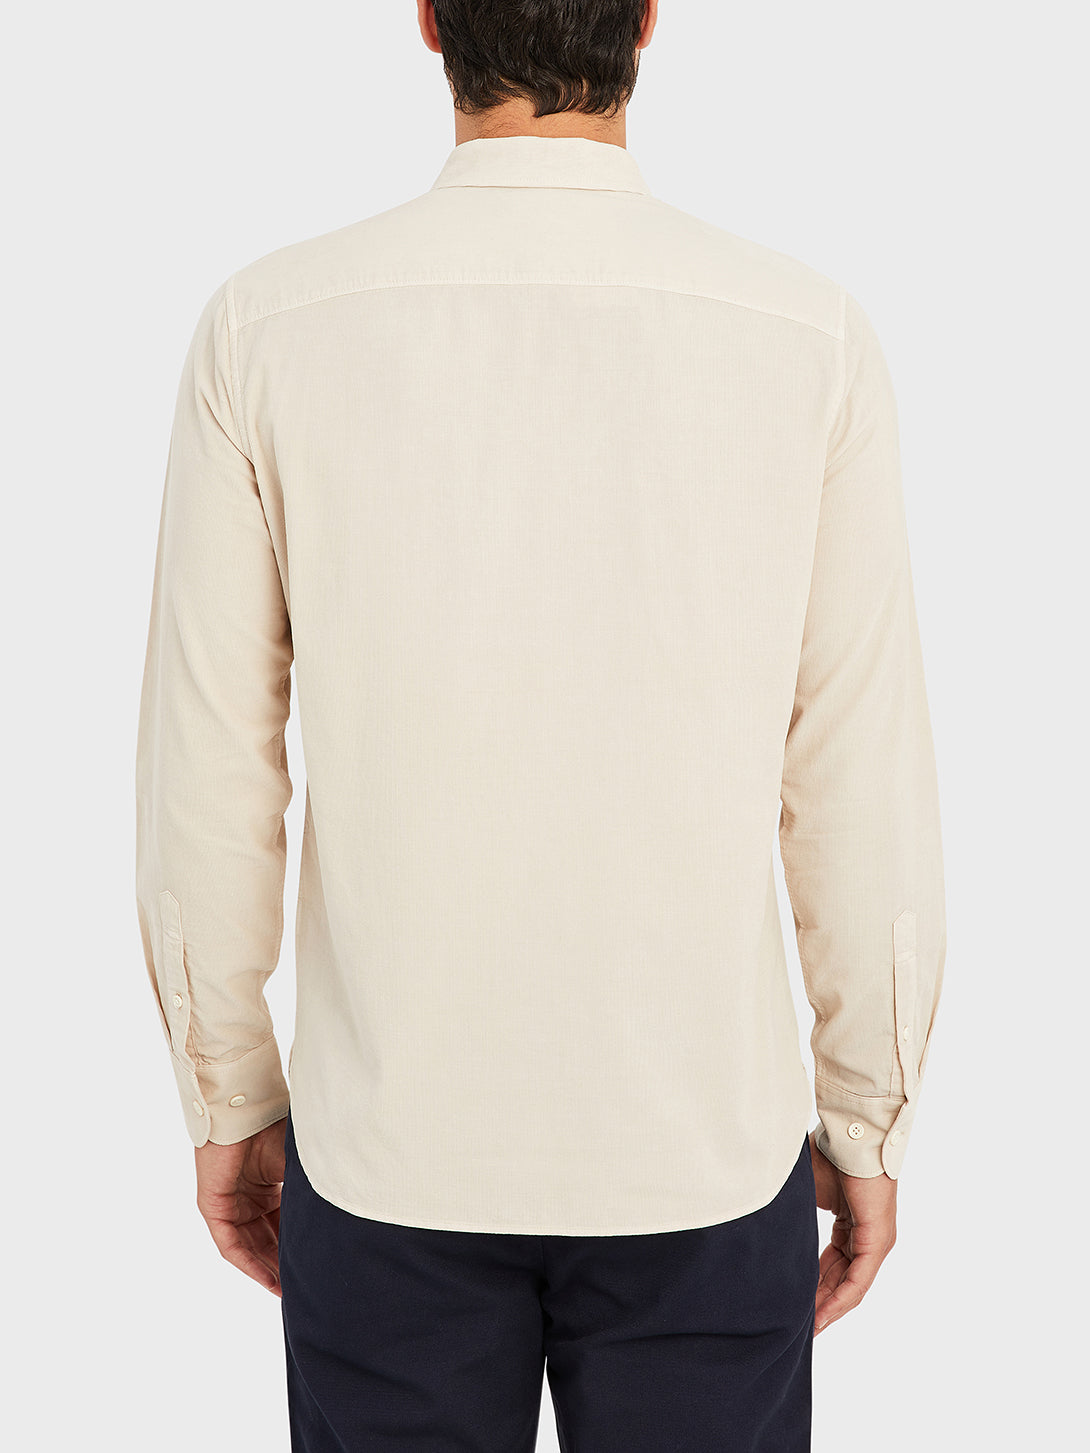 ONS Clothing Men's FULTON CORD SHIRT in CEMENT